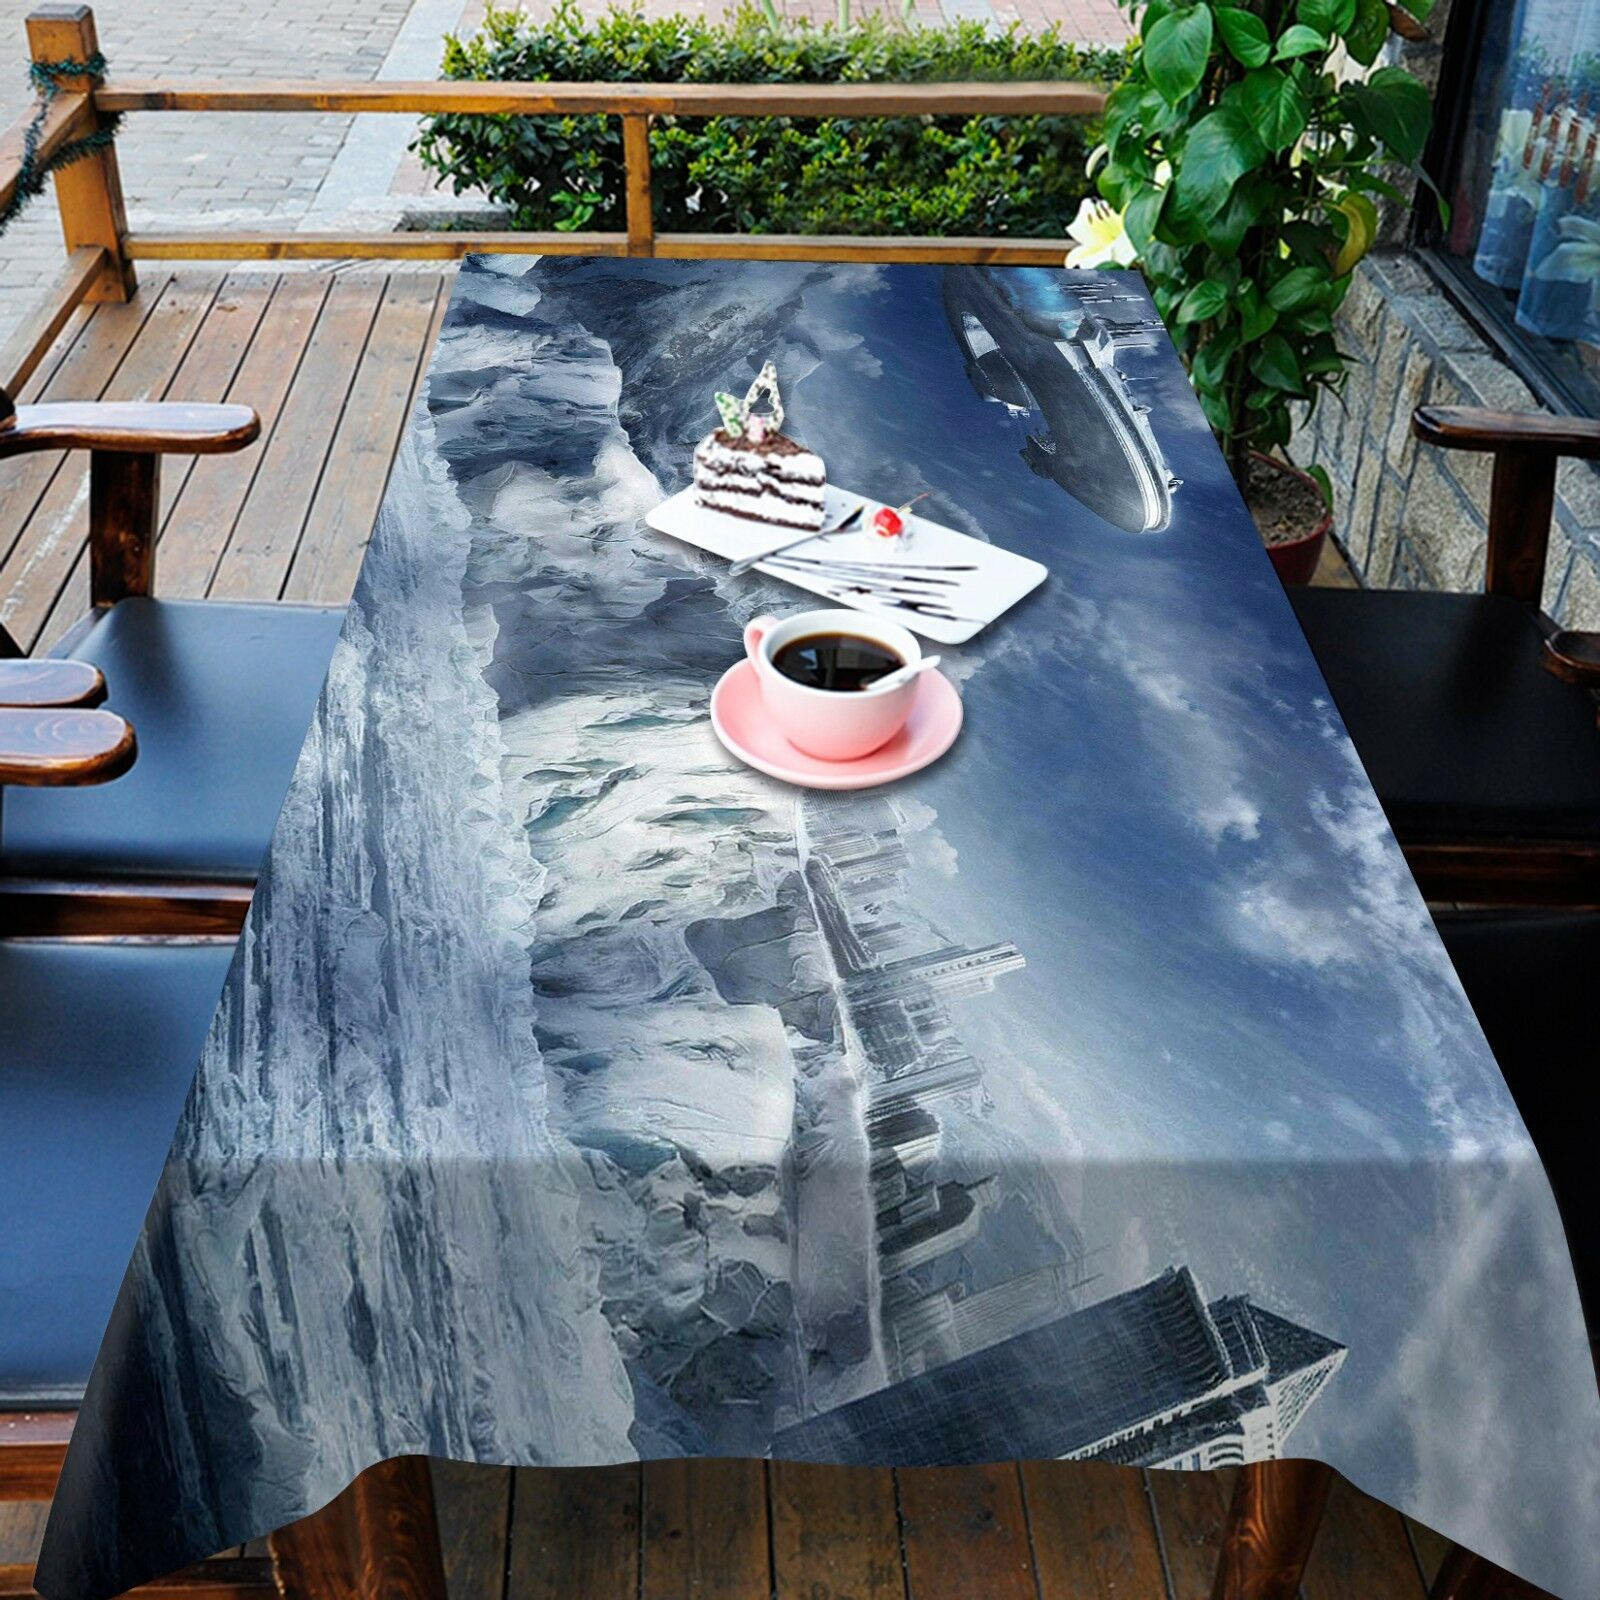 3D Scene 4744 Tablecloth Table Cover Cloth Birthday Party Event AJ WALLPAPER AU